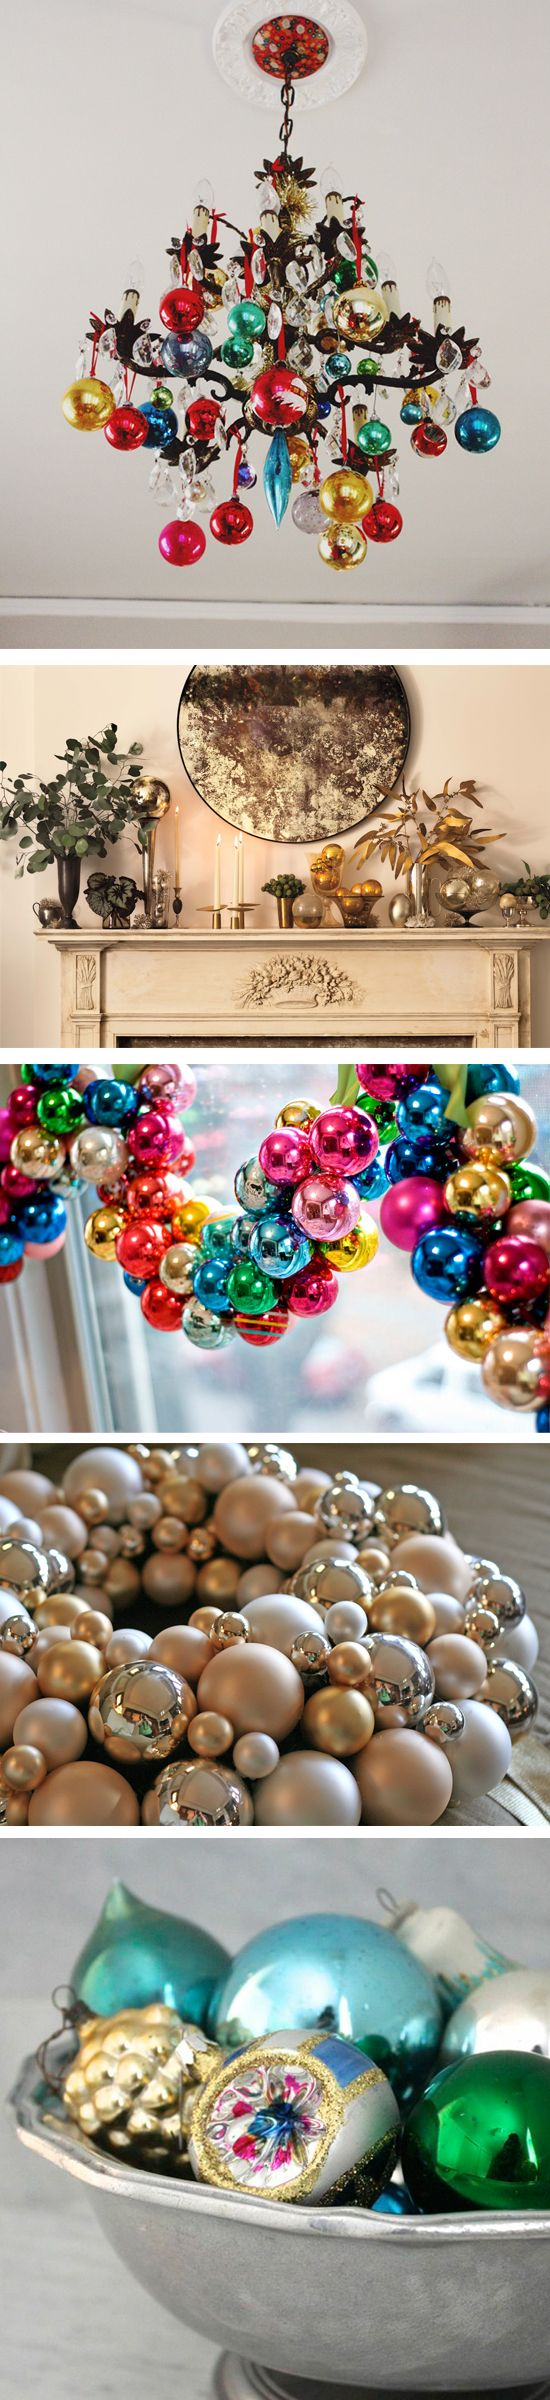 6 Ways to Put Extra Ornaments to Good Use: